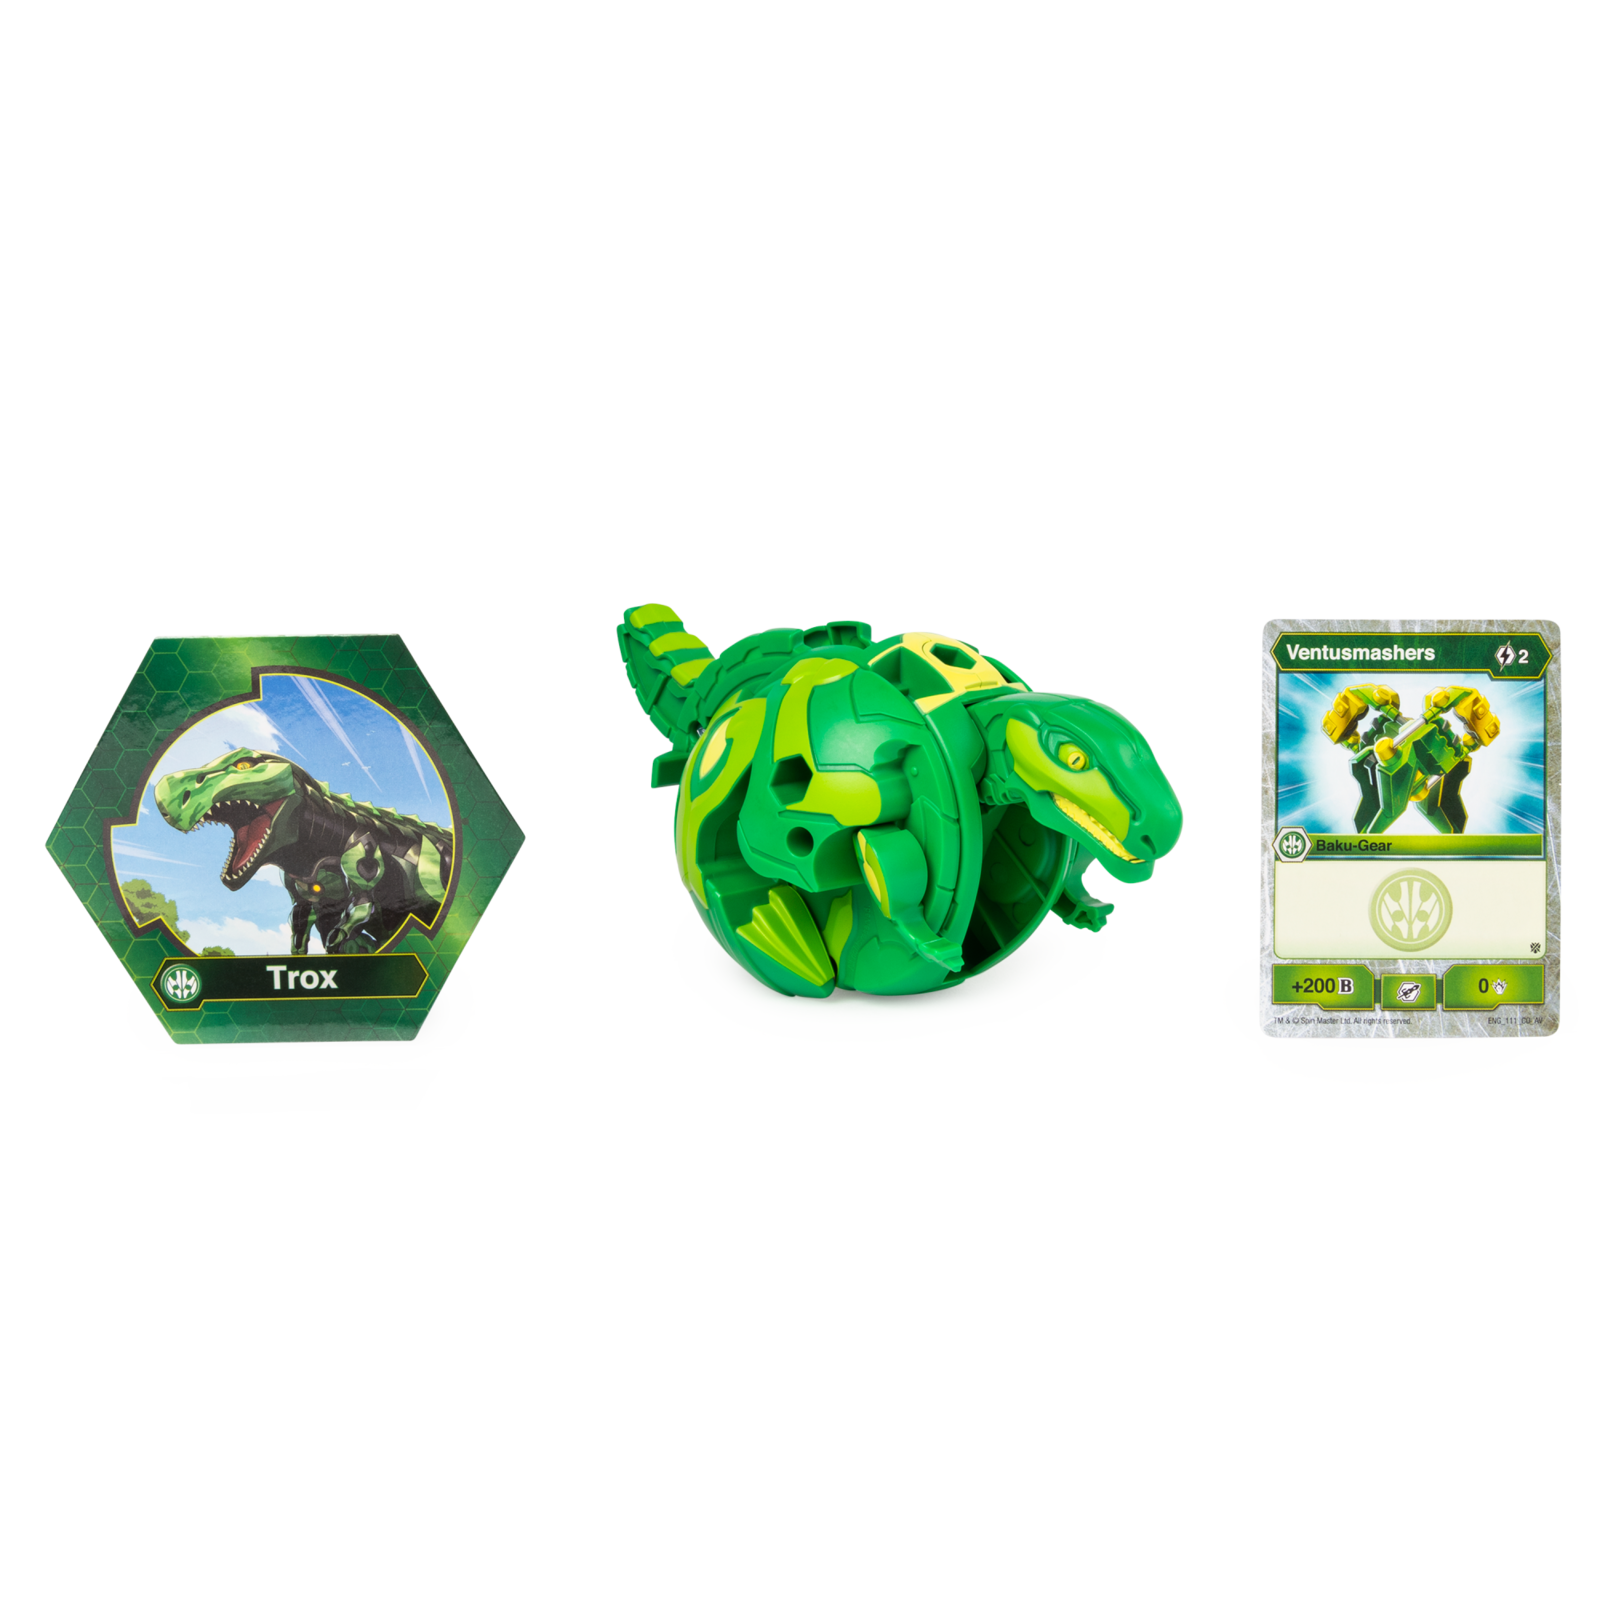 Bakugan: Battle Planet - Deka Bakugan (Trox) image